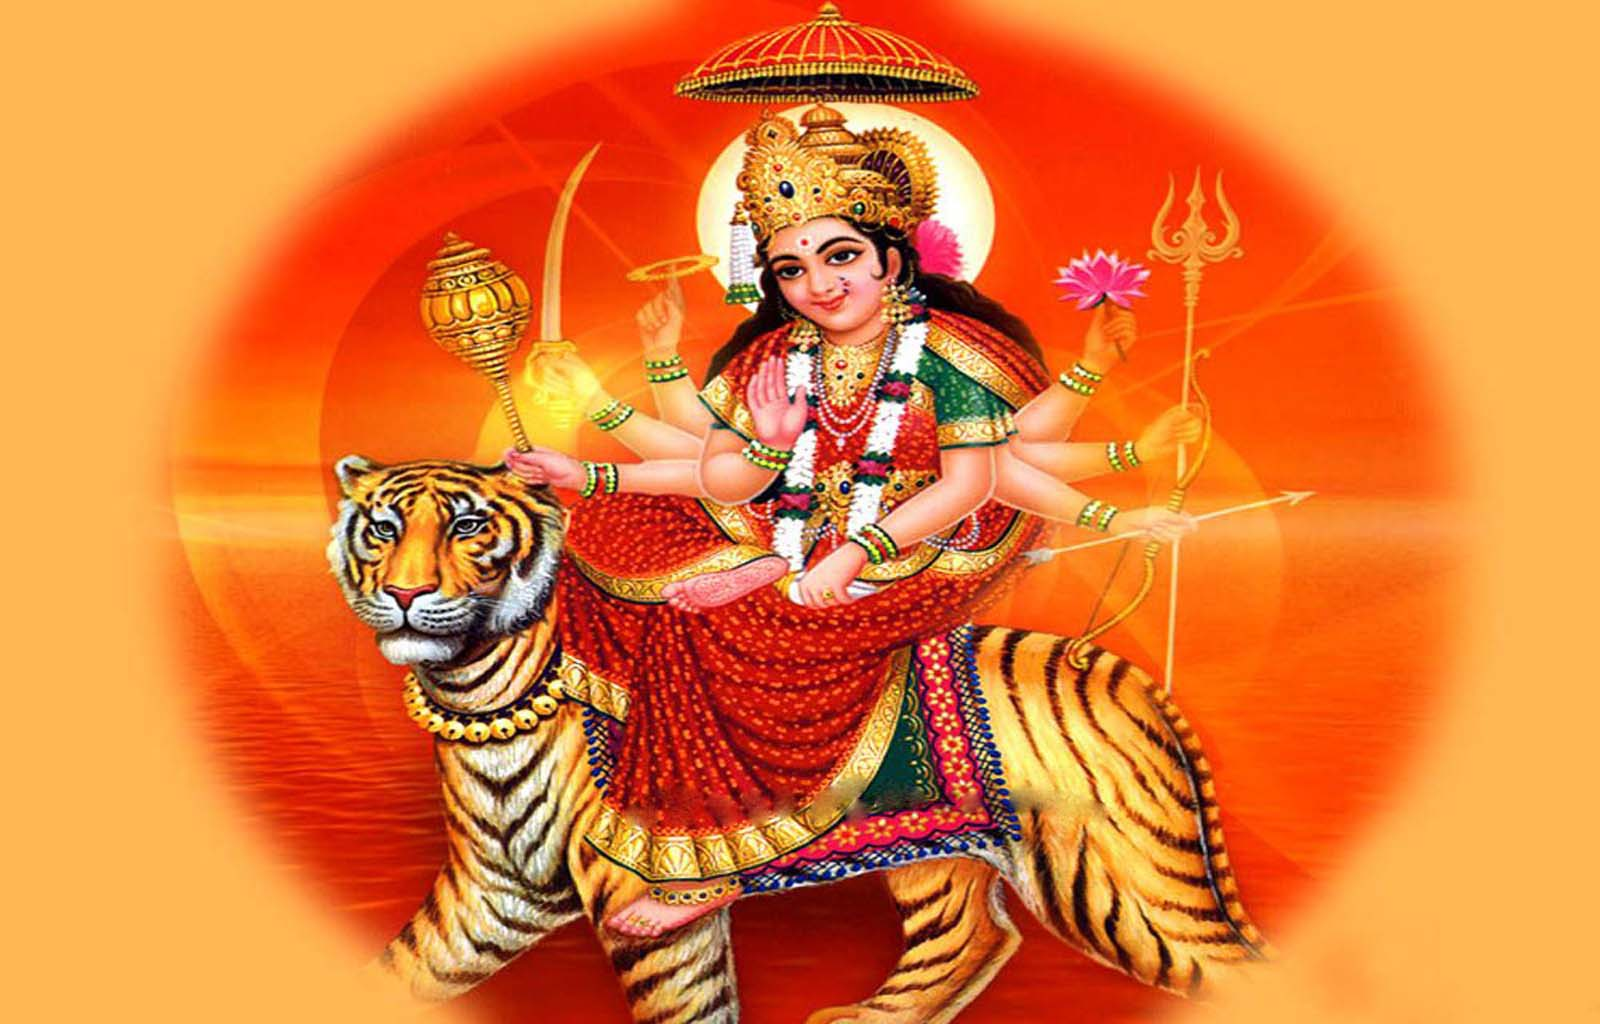 09 Best Latest Maa Durga / Durga Puja HD Wallpapers / Free Download.